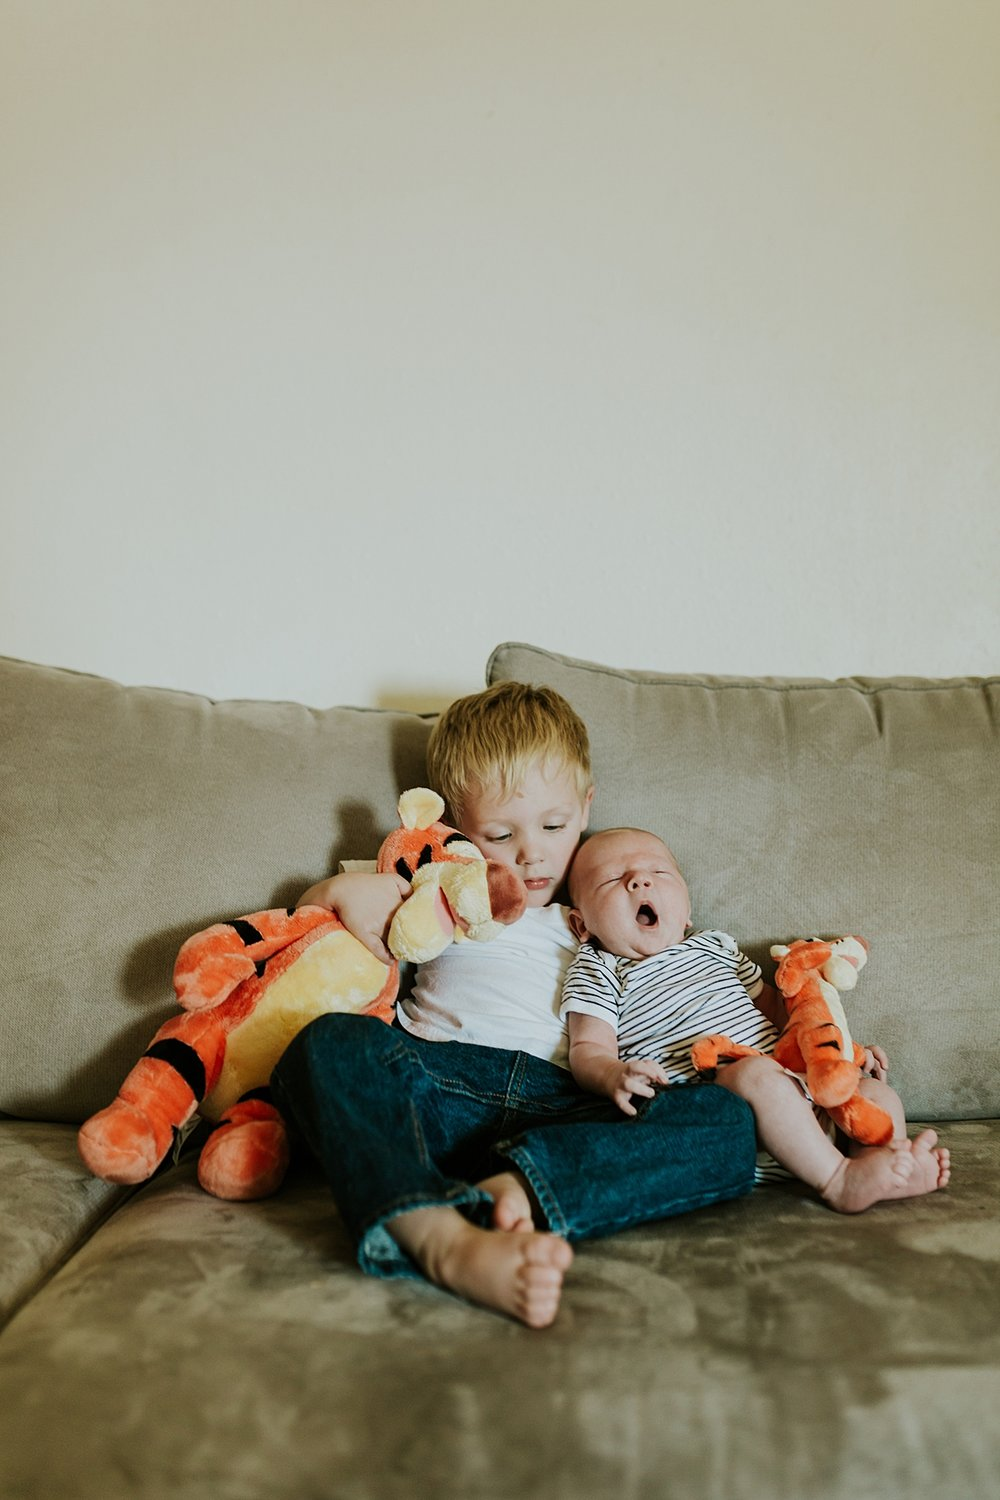 Orange County family photographer. Photo of brothers with their stuffed toys as they sit on the couch during in home newborn session with Krystil McDowall Photography